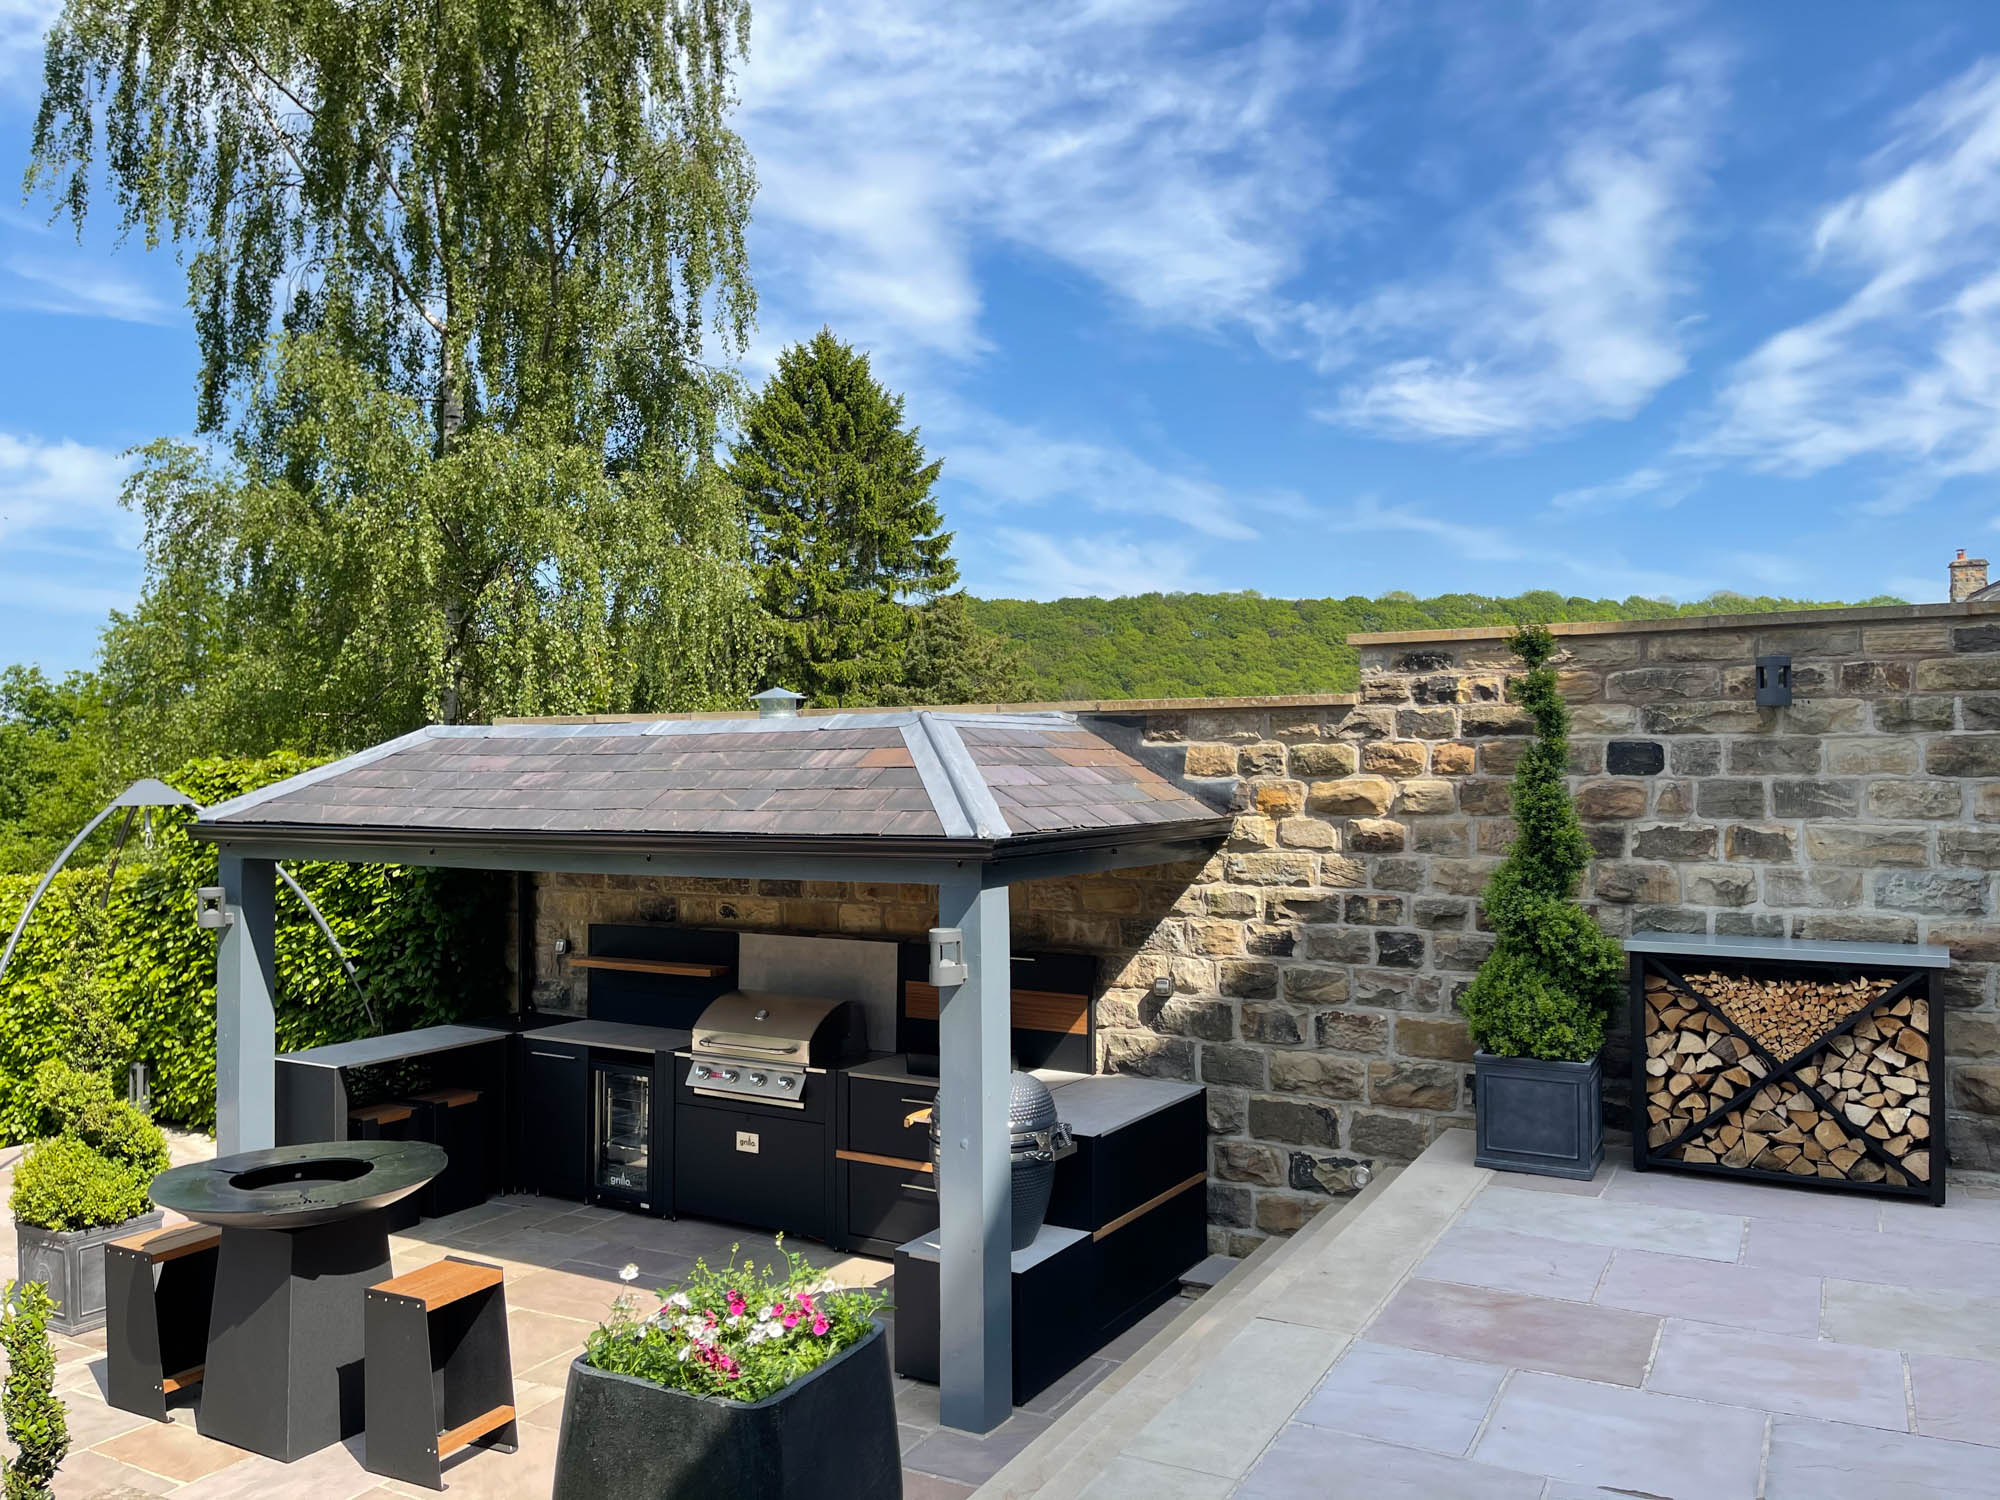 Competition Vantage Gas BBQ Anvil Gusto Bar Sheffield 4